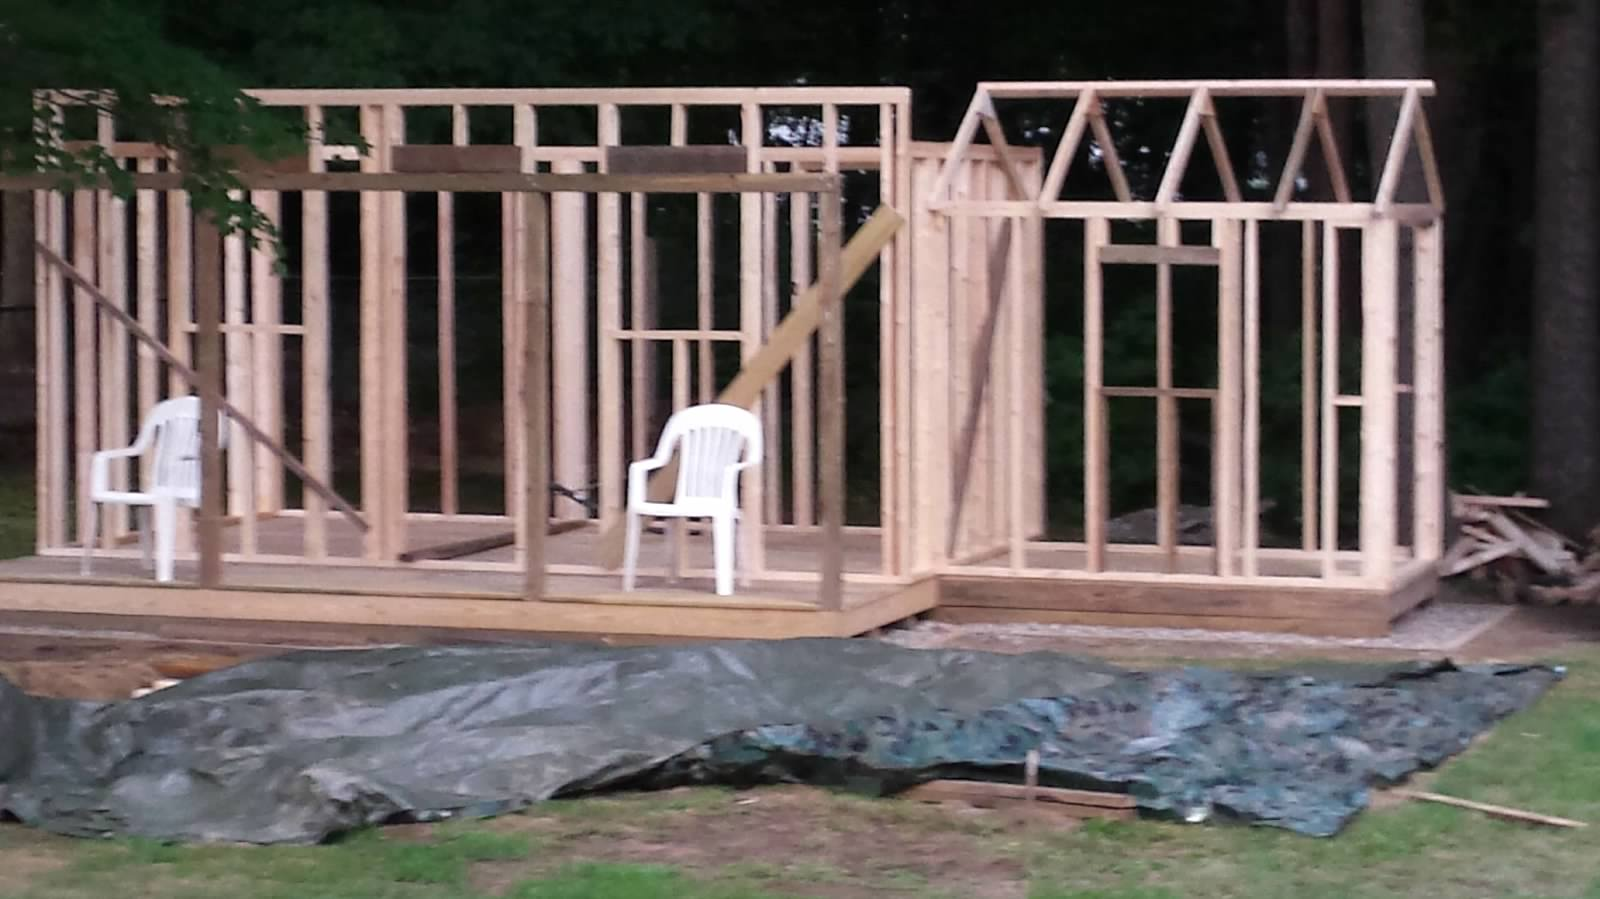 Sauna building framed in. Note chairs to help sauna builder feel the vibe of finished space.